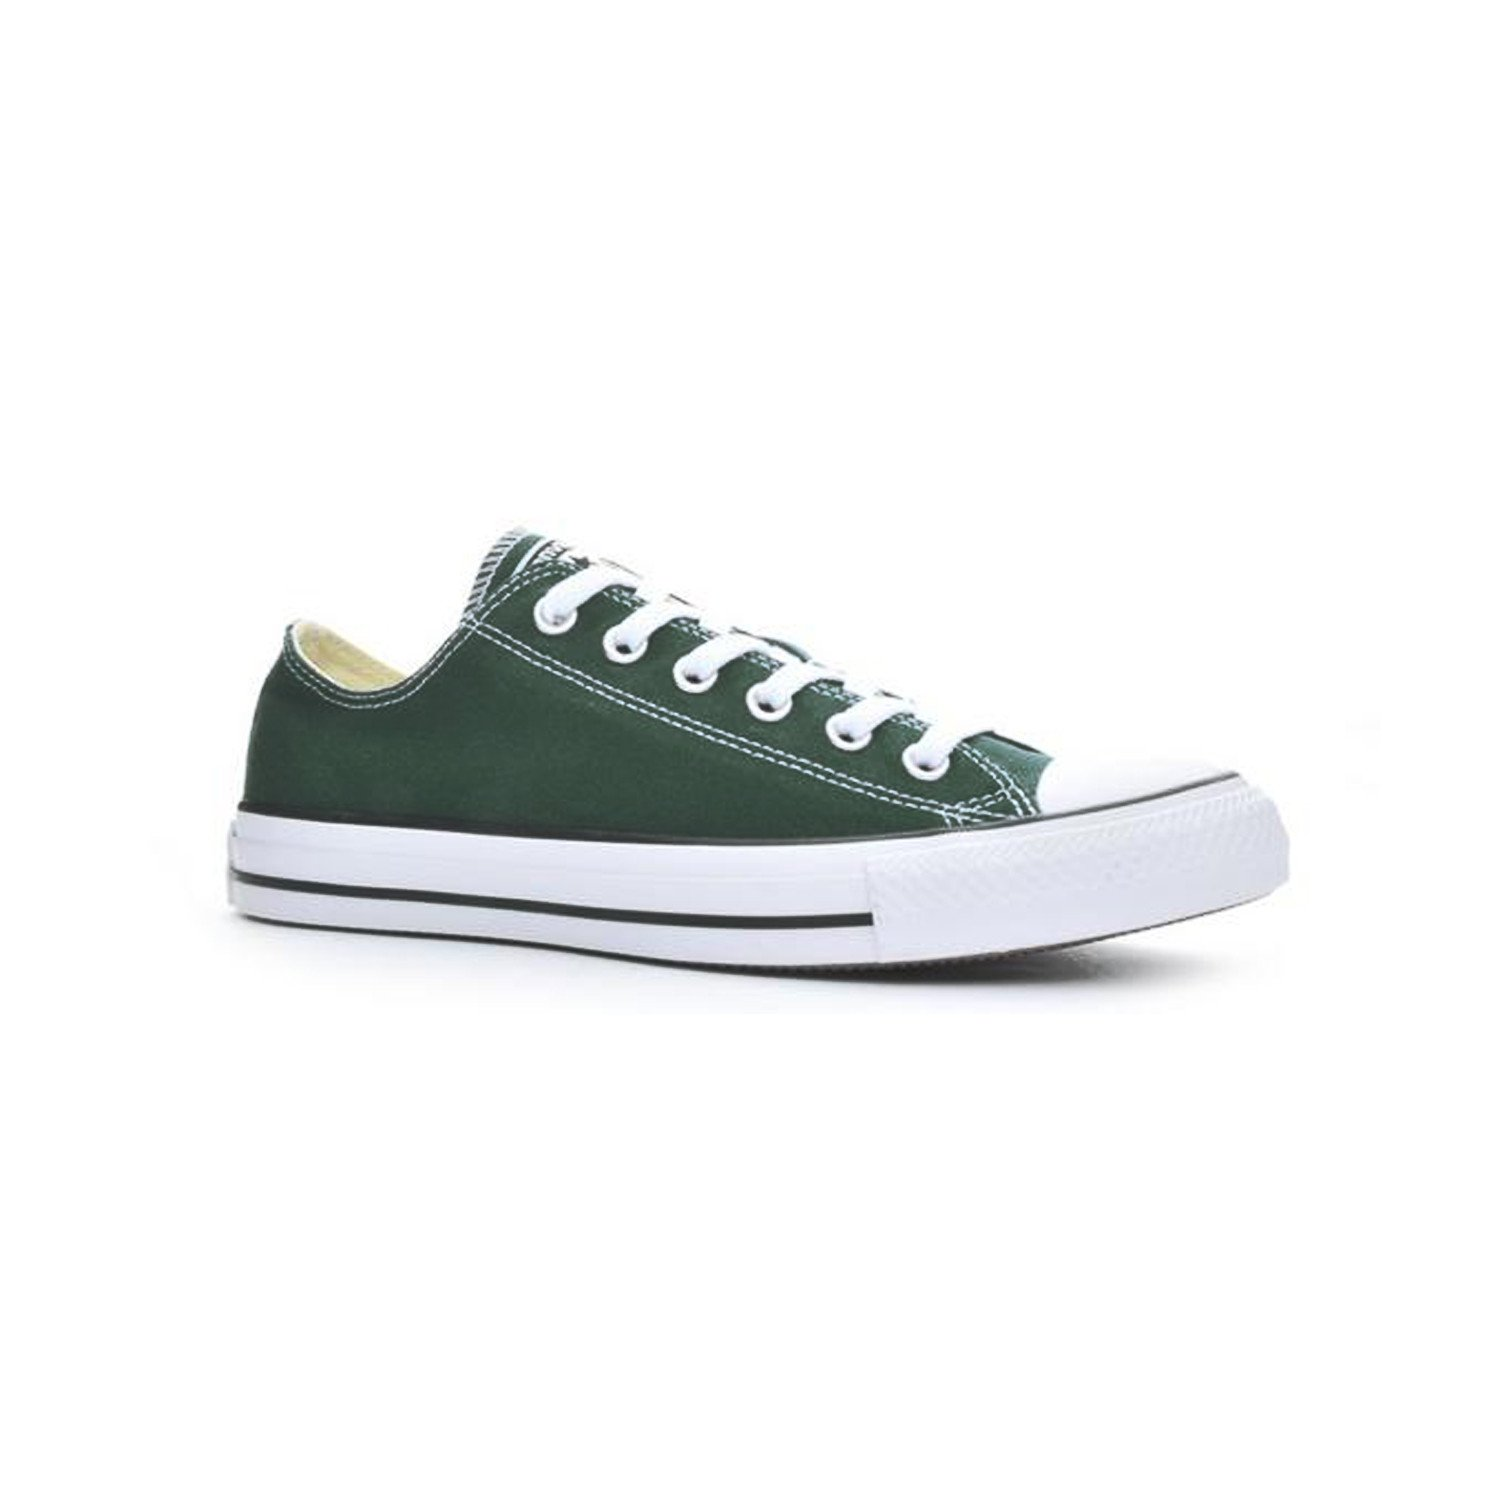 38692f7b313 Amazon.com | Converse Chuck Taylor All Star Seasonal Colors Ox UNISEX |  Fashion Sneakers